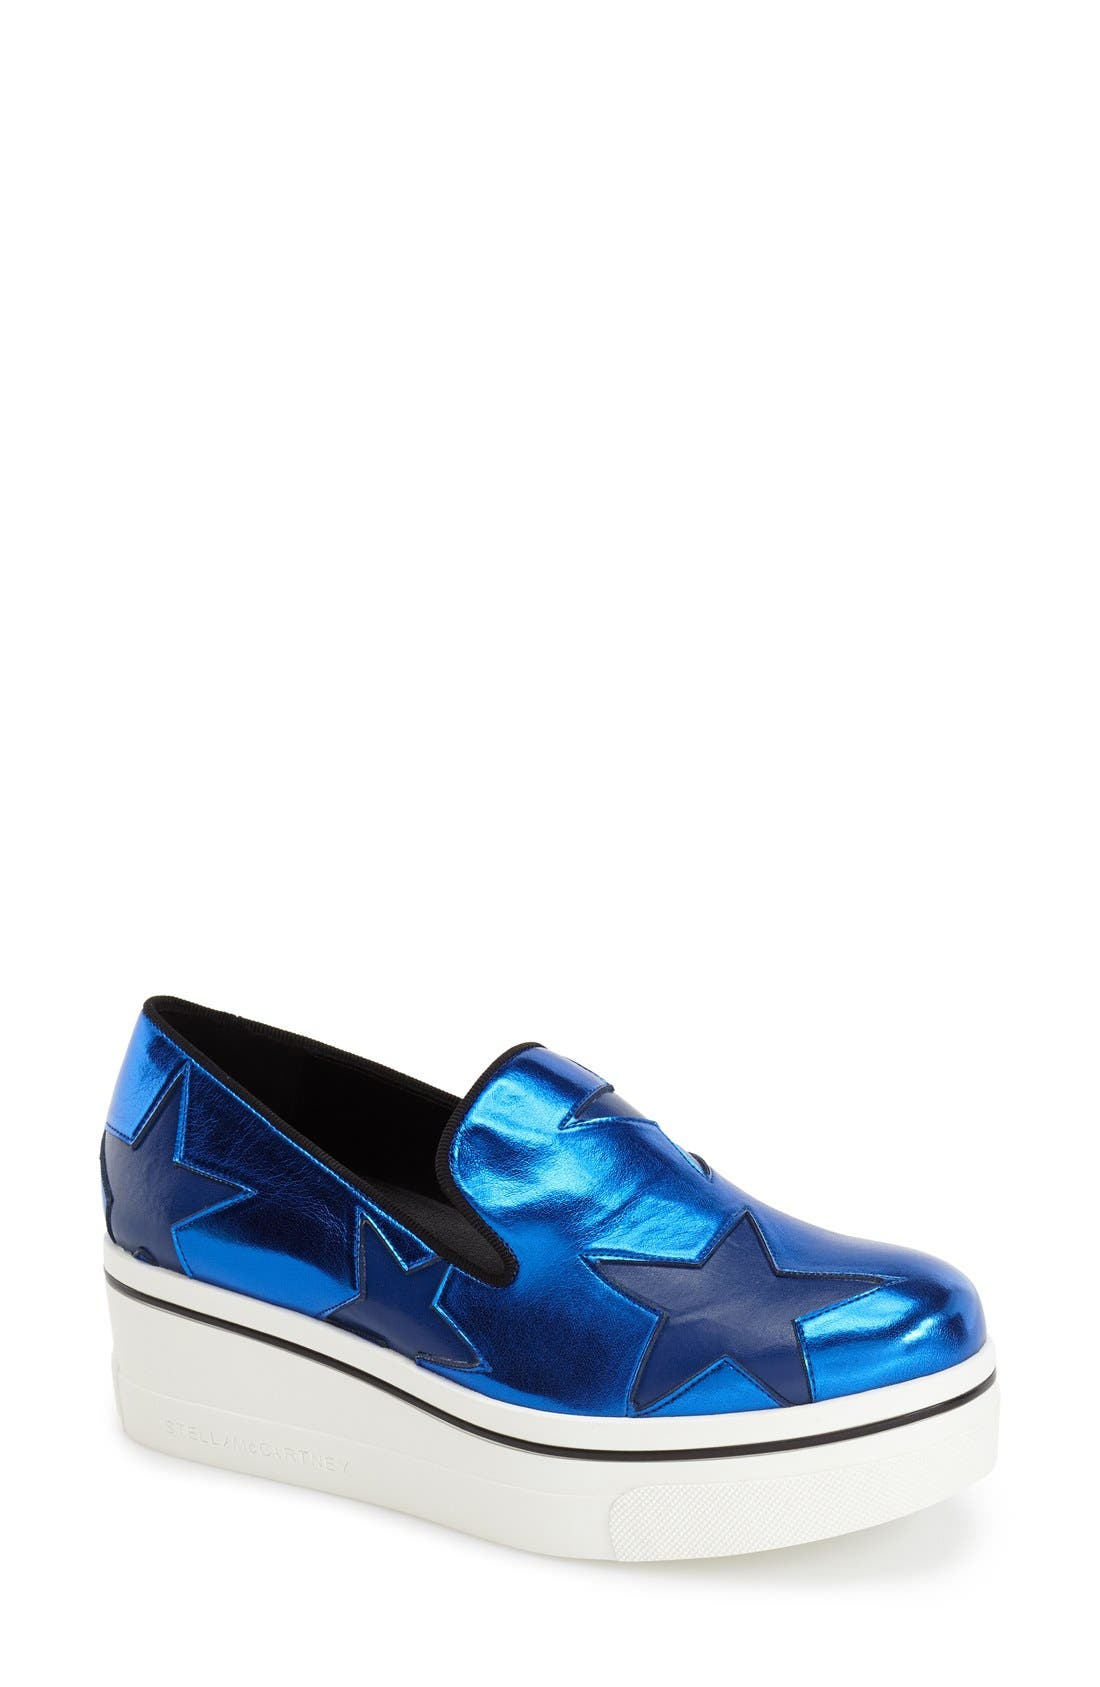 Alternate Image 1 Selected - Stella McCartney 'Star' Platform Loafer (Women)